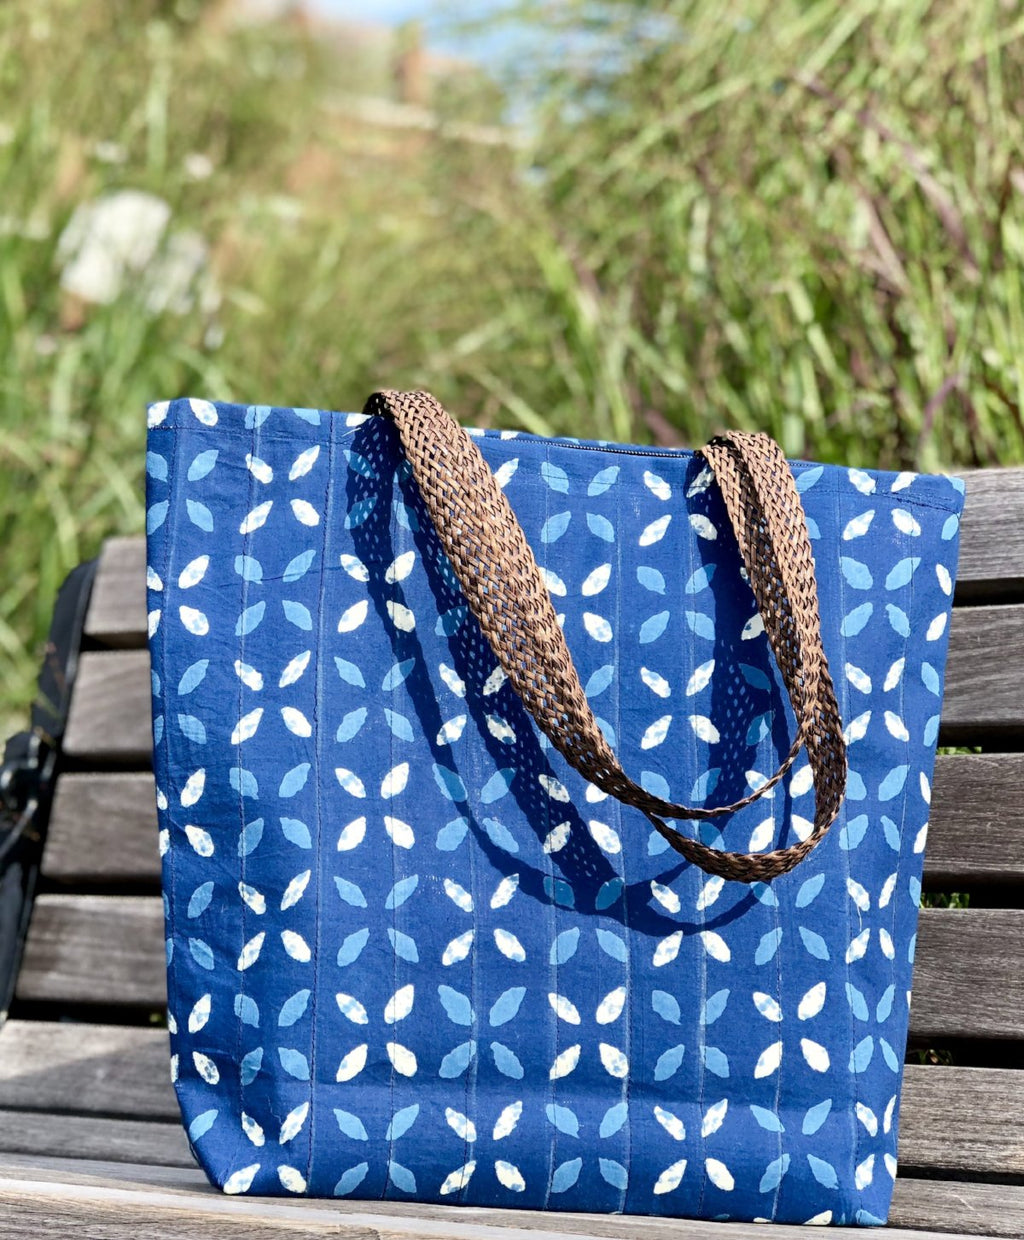 Handmade Colorful Fabric Indian unique tote handbag travelbag laptop bag traveltote printed blue navy summer colors pop of color ethnic waterproof indigo